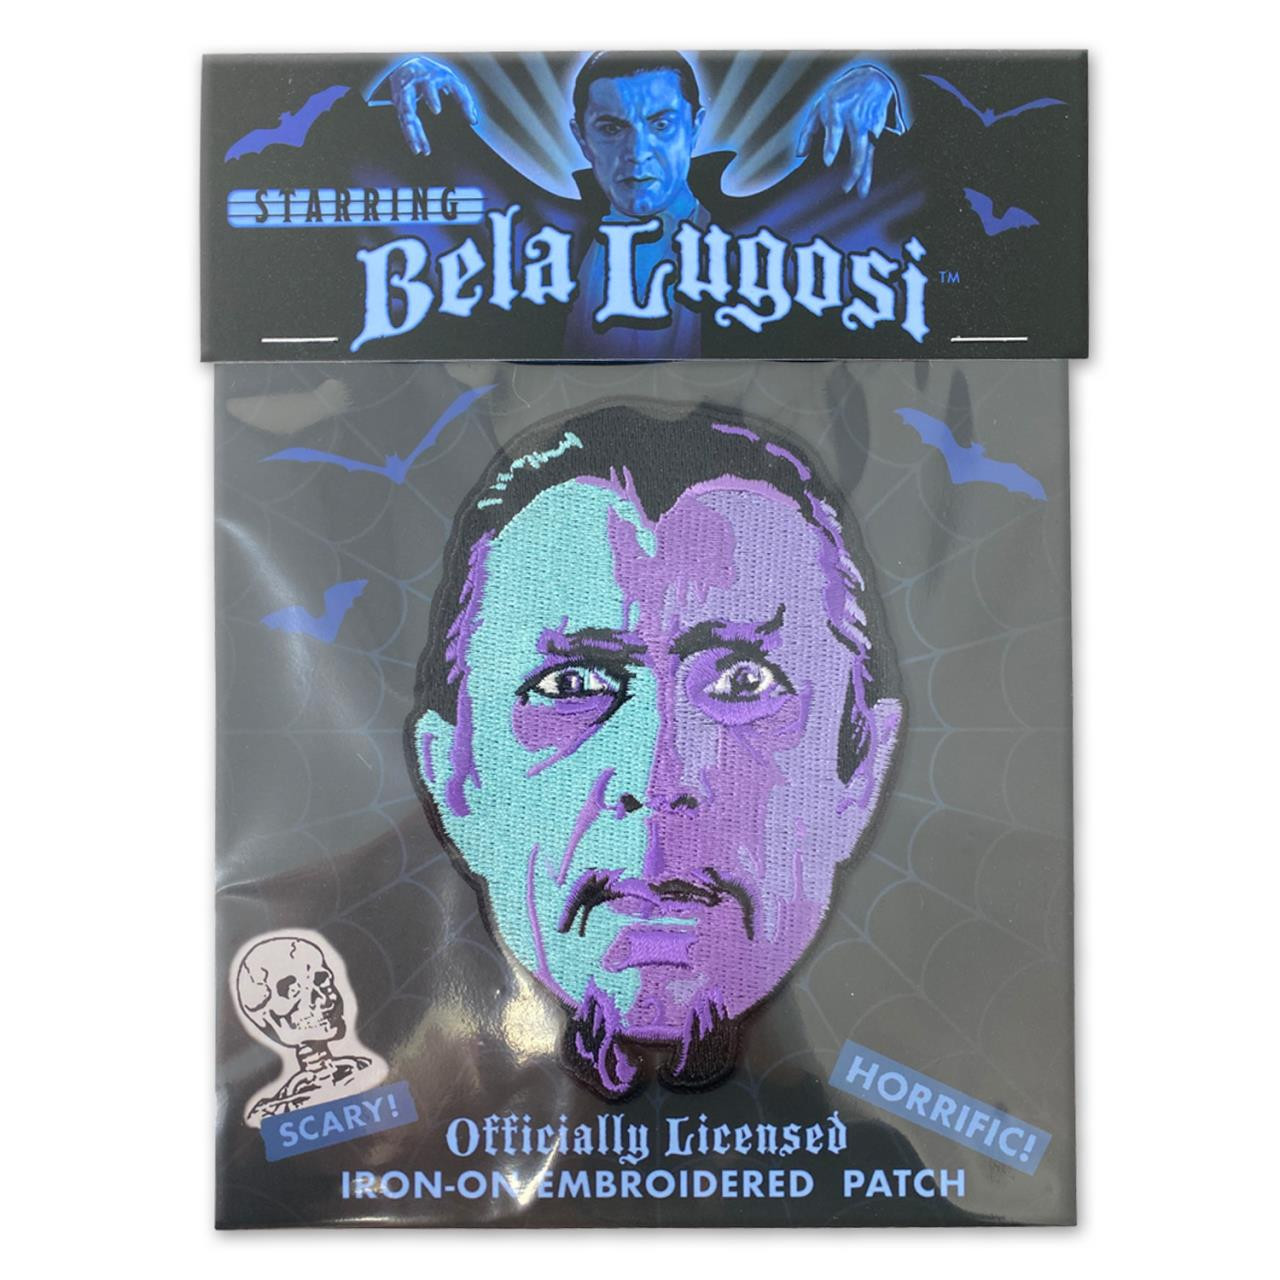 Bela Lugosi in White Zombie Patch* -